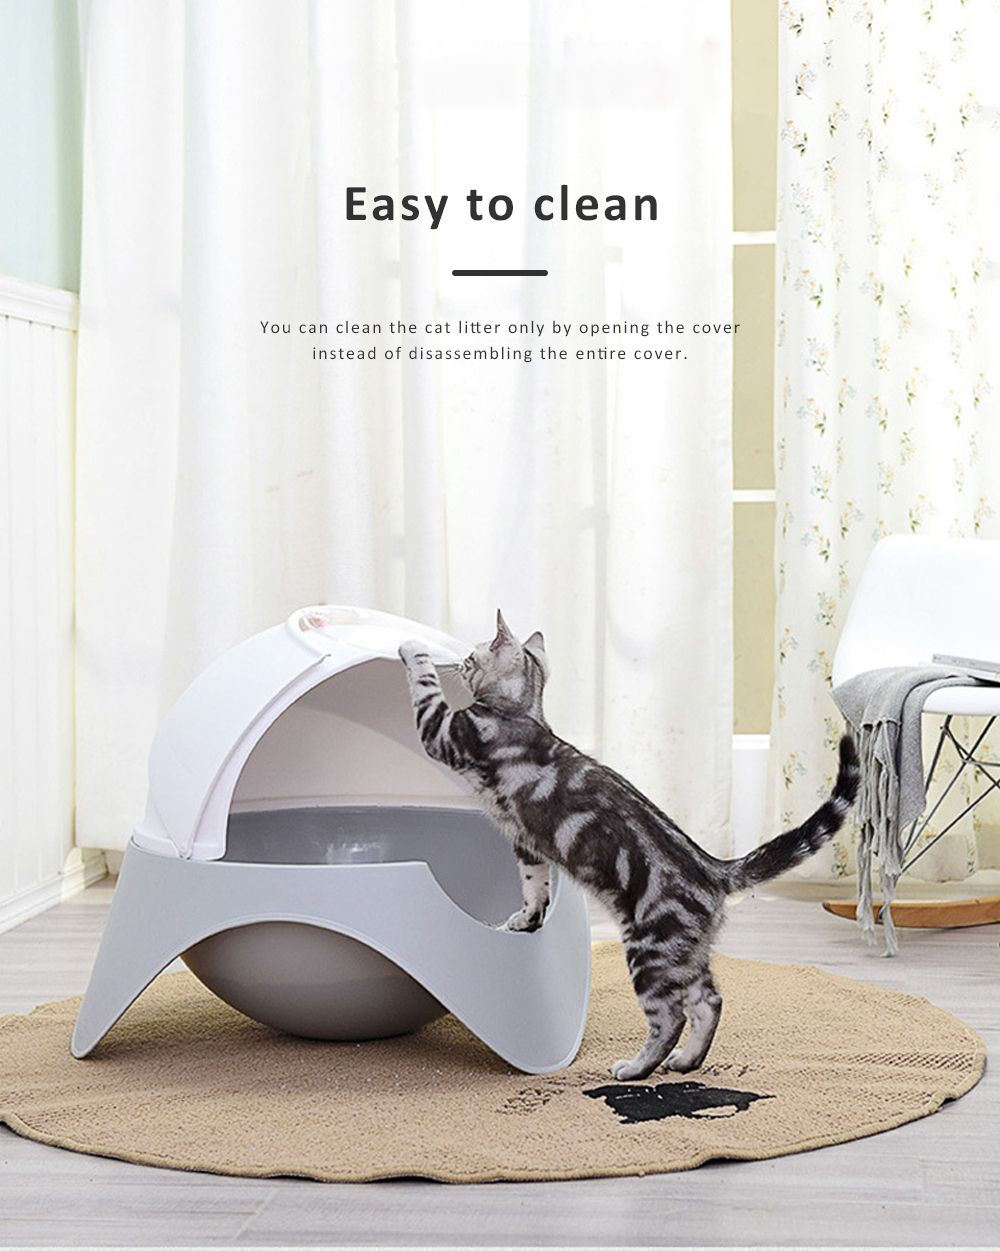 Space Capsule Cat Box, Totally Enclosed Space Capsule Extra Large Toilet for Cats Splash-proof Deodorization 5